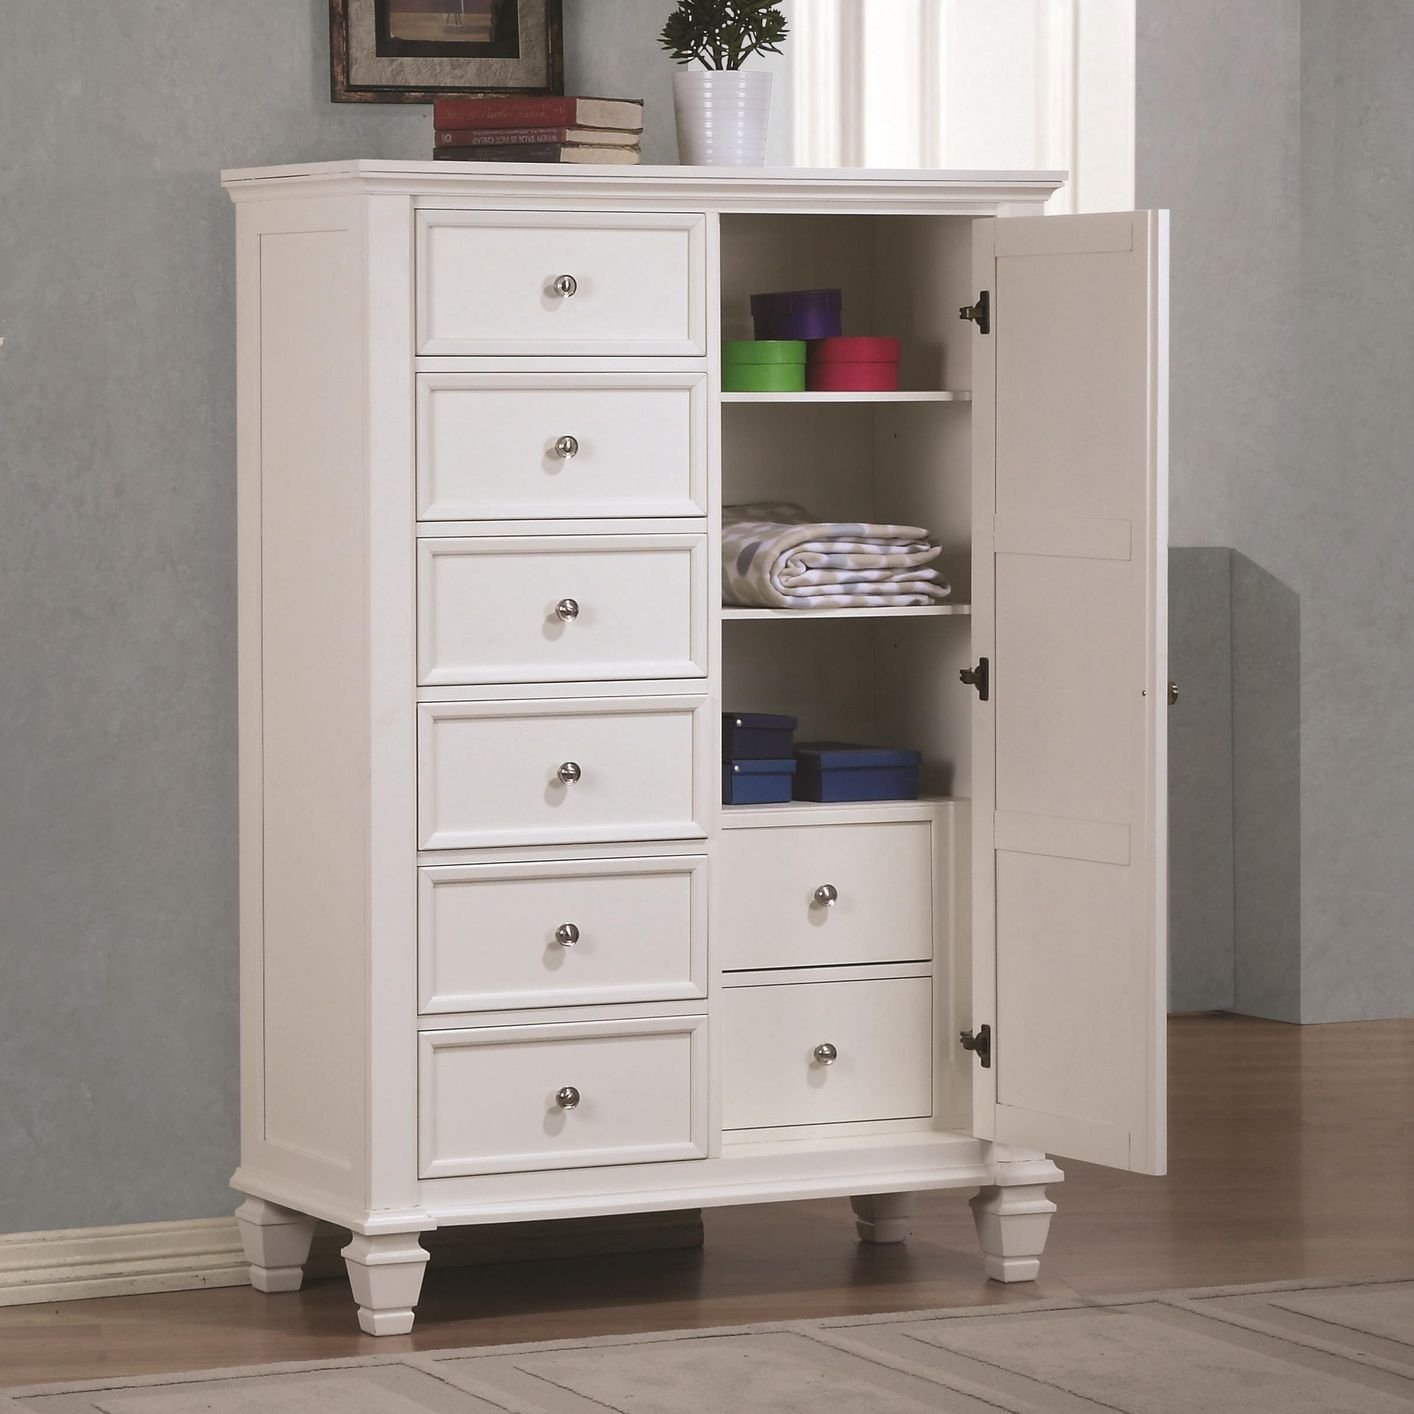 Coaster 201308 White Wood Chest Of Drawers Steal A Sofa